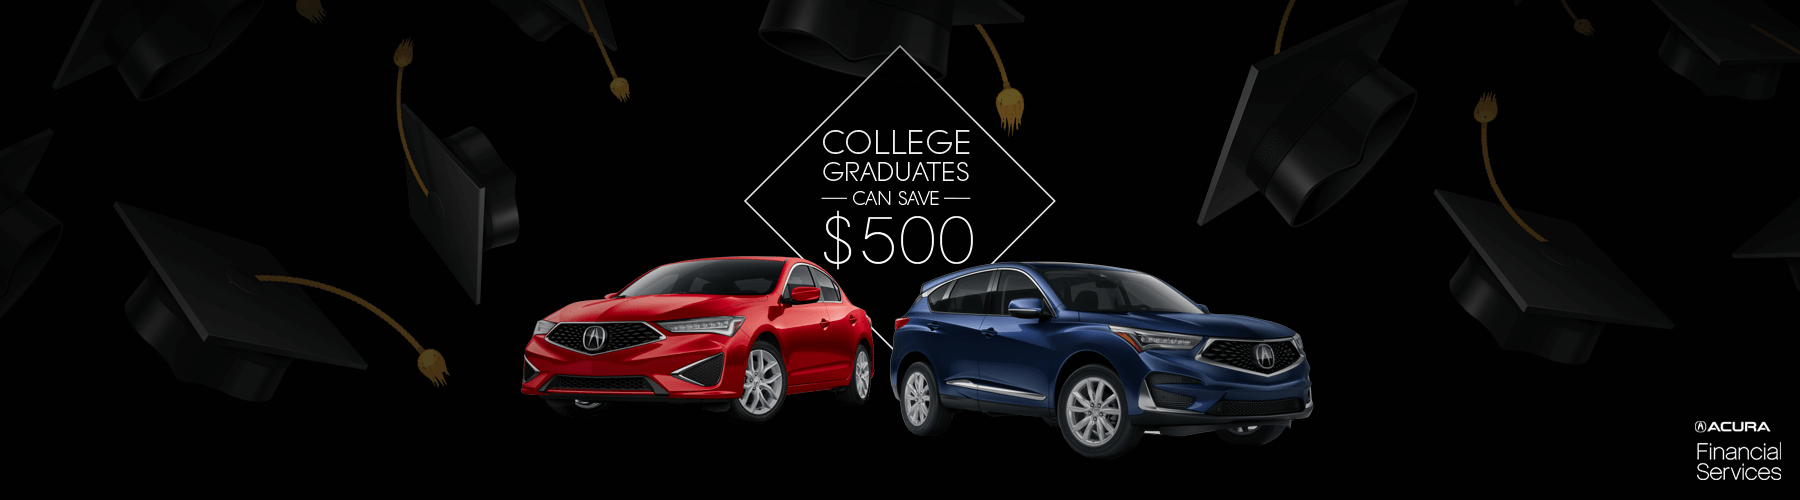 2019 Acura College Graduate Program Slider